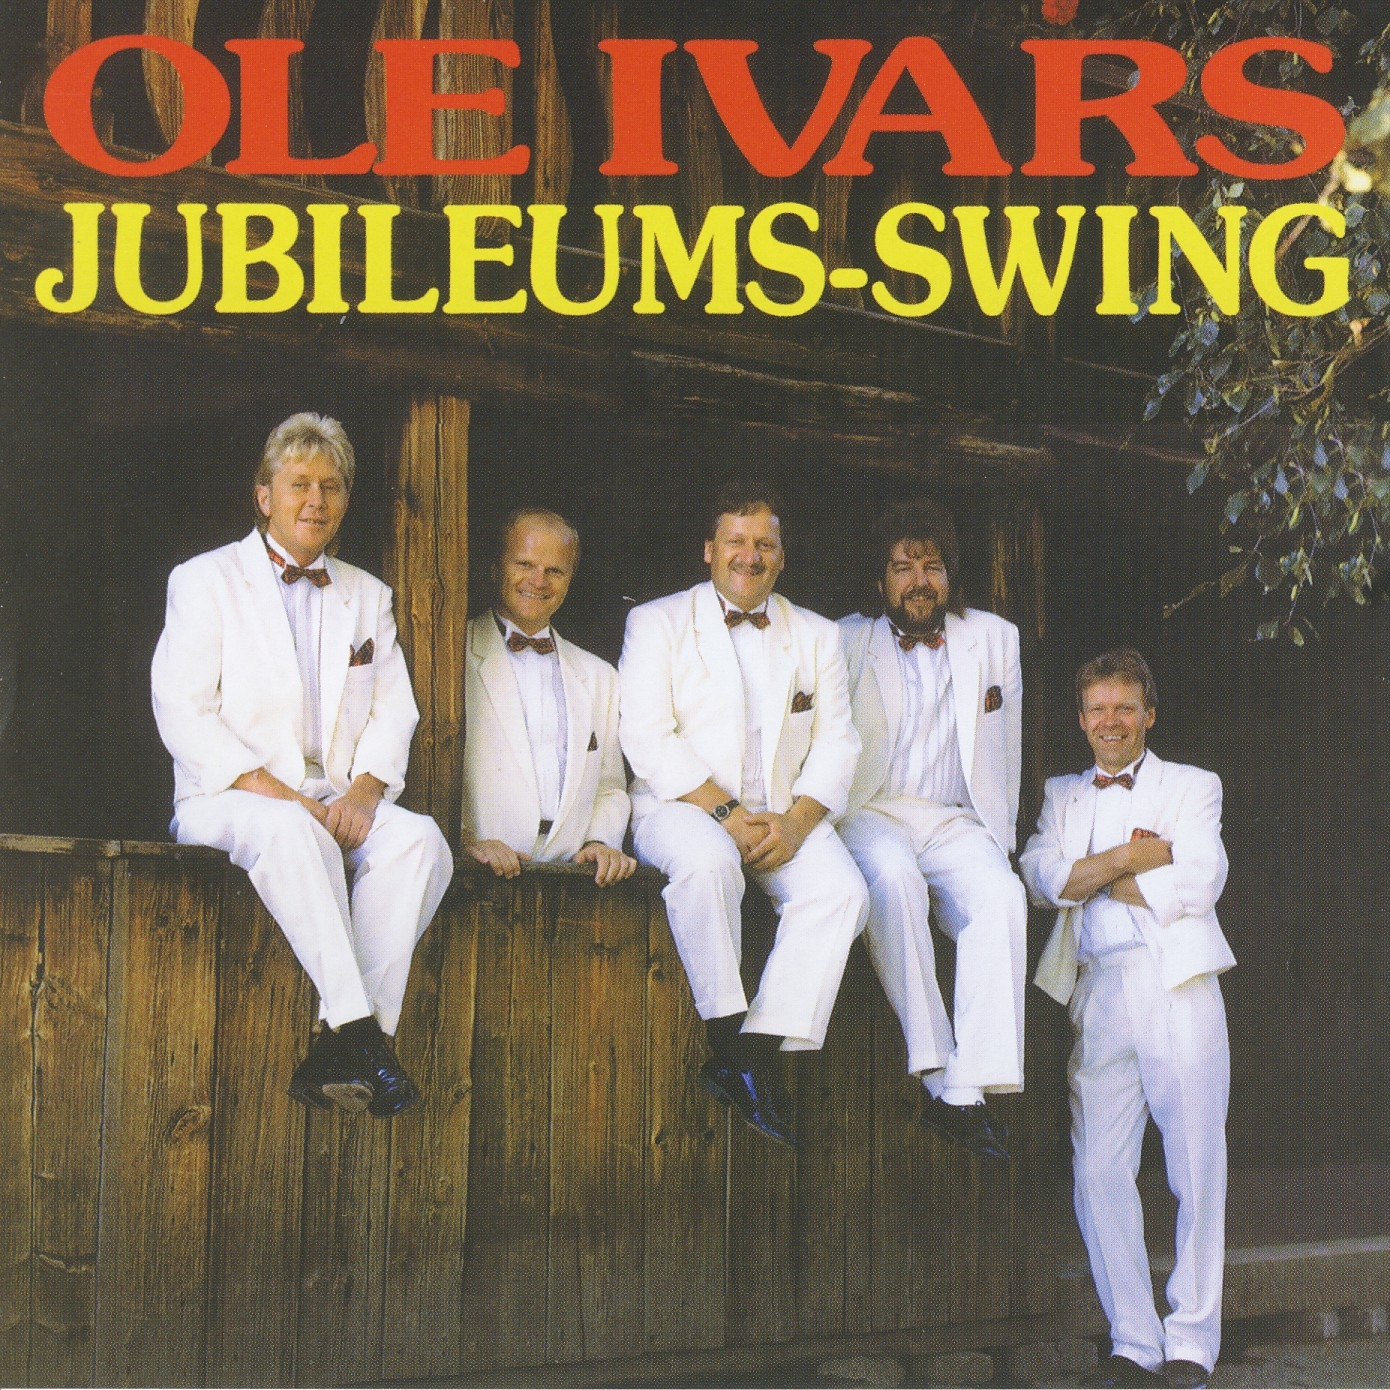 Jubileums-Swing